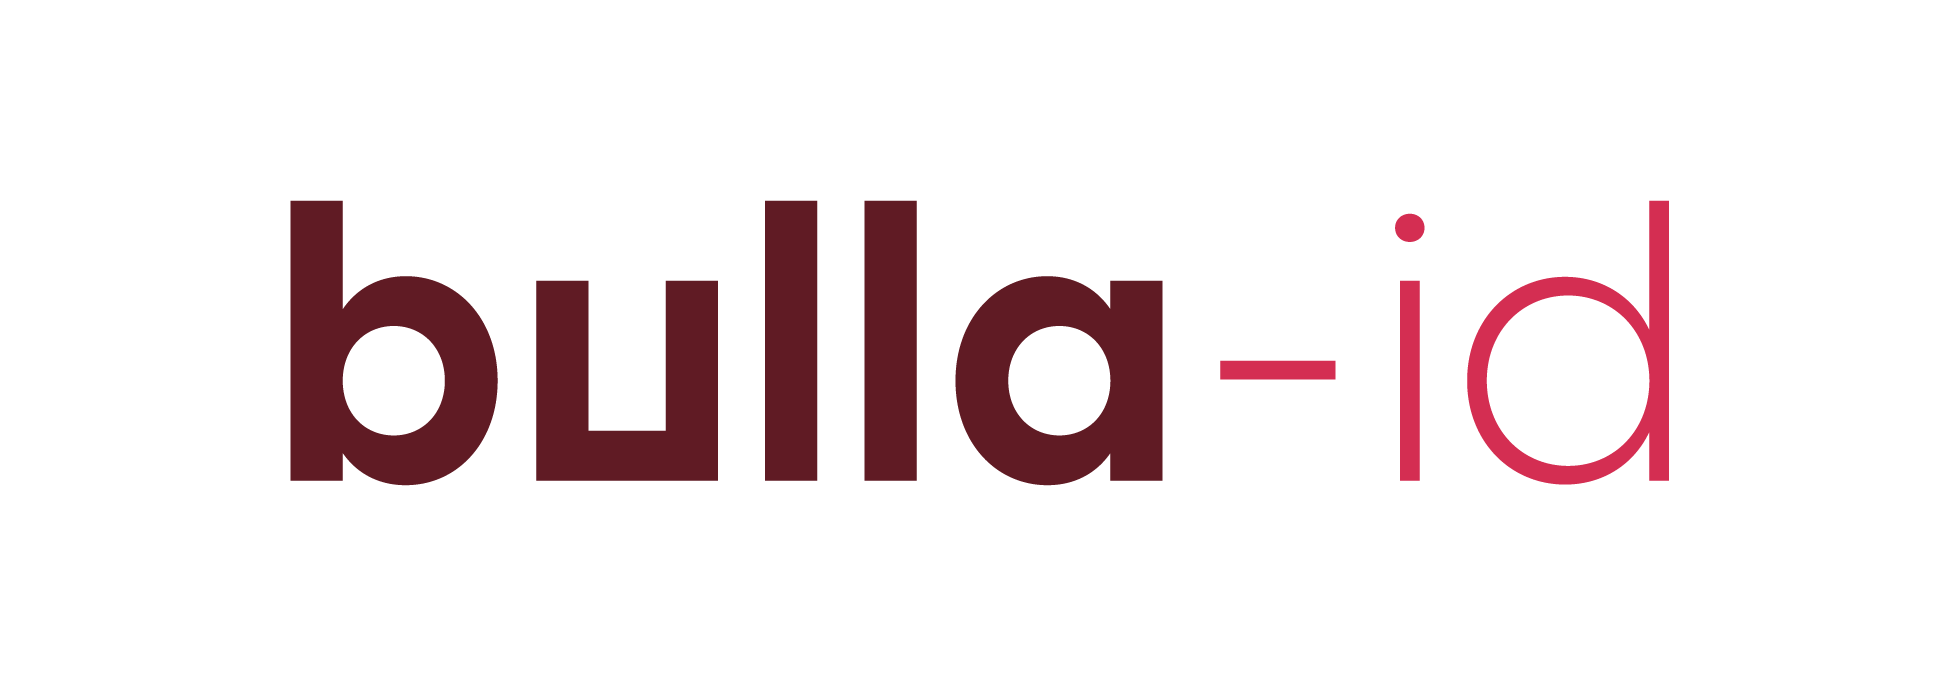 Logotipo do Bulla